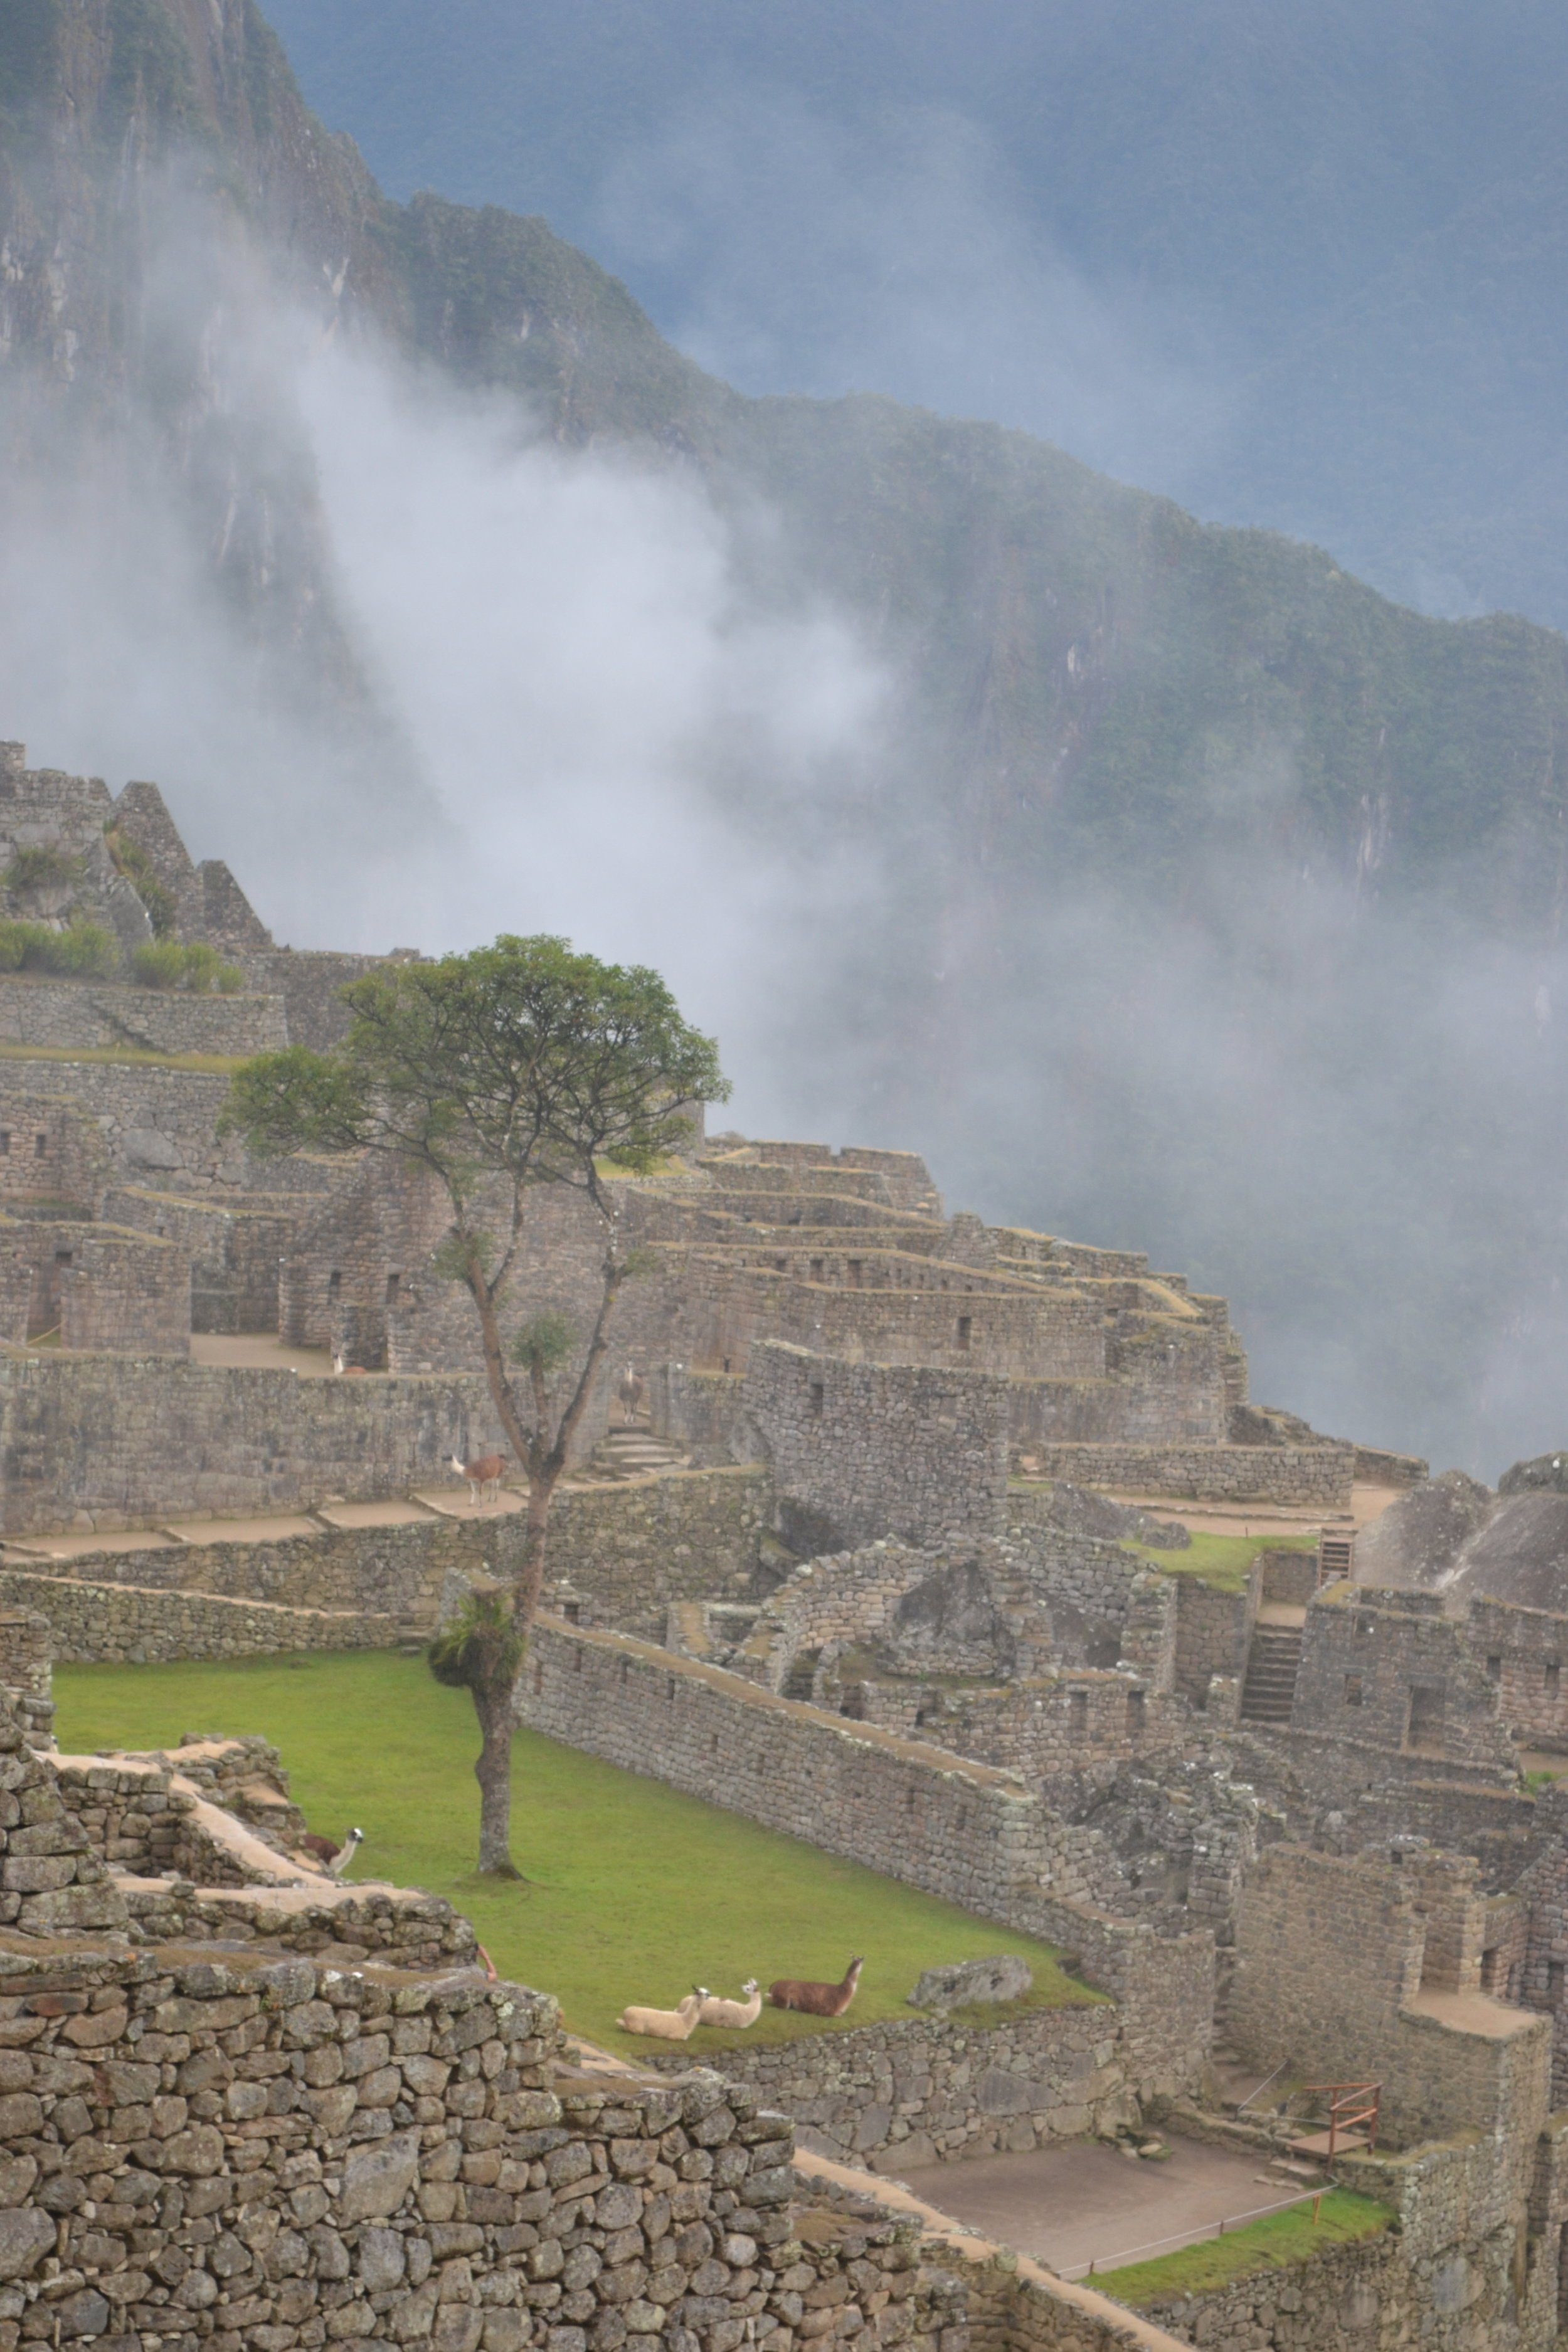 One of my favorite Pictures from Machu Picchu!